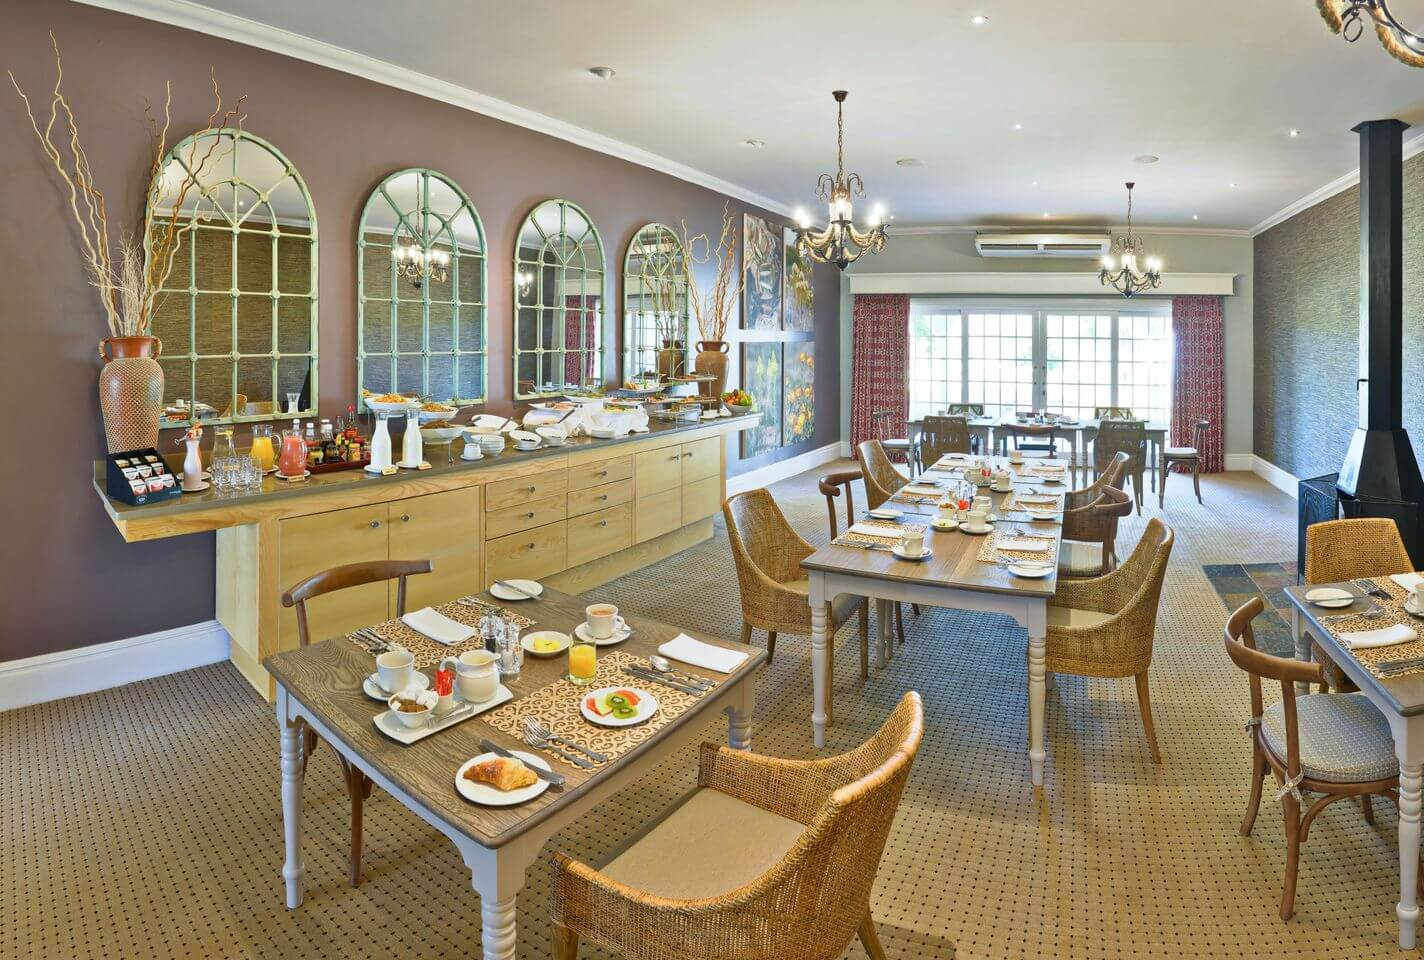 Riverdene-family-lodge-breakfast-dining-2016-new